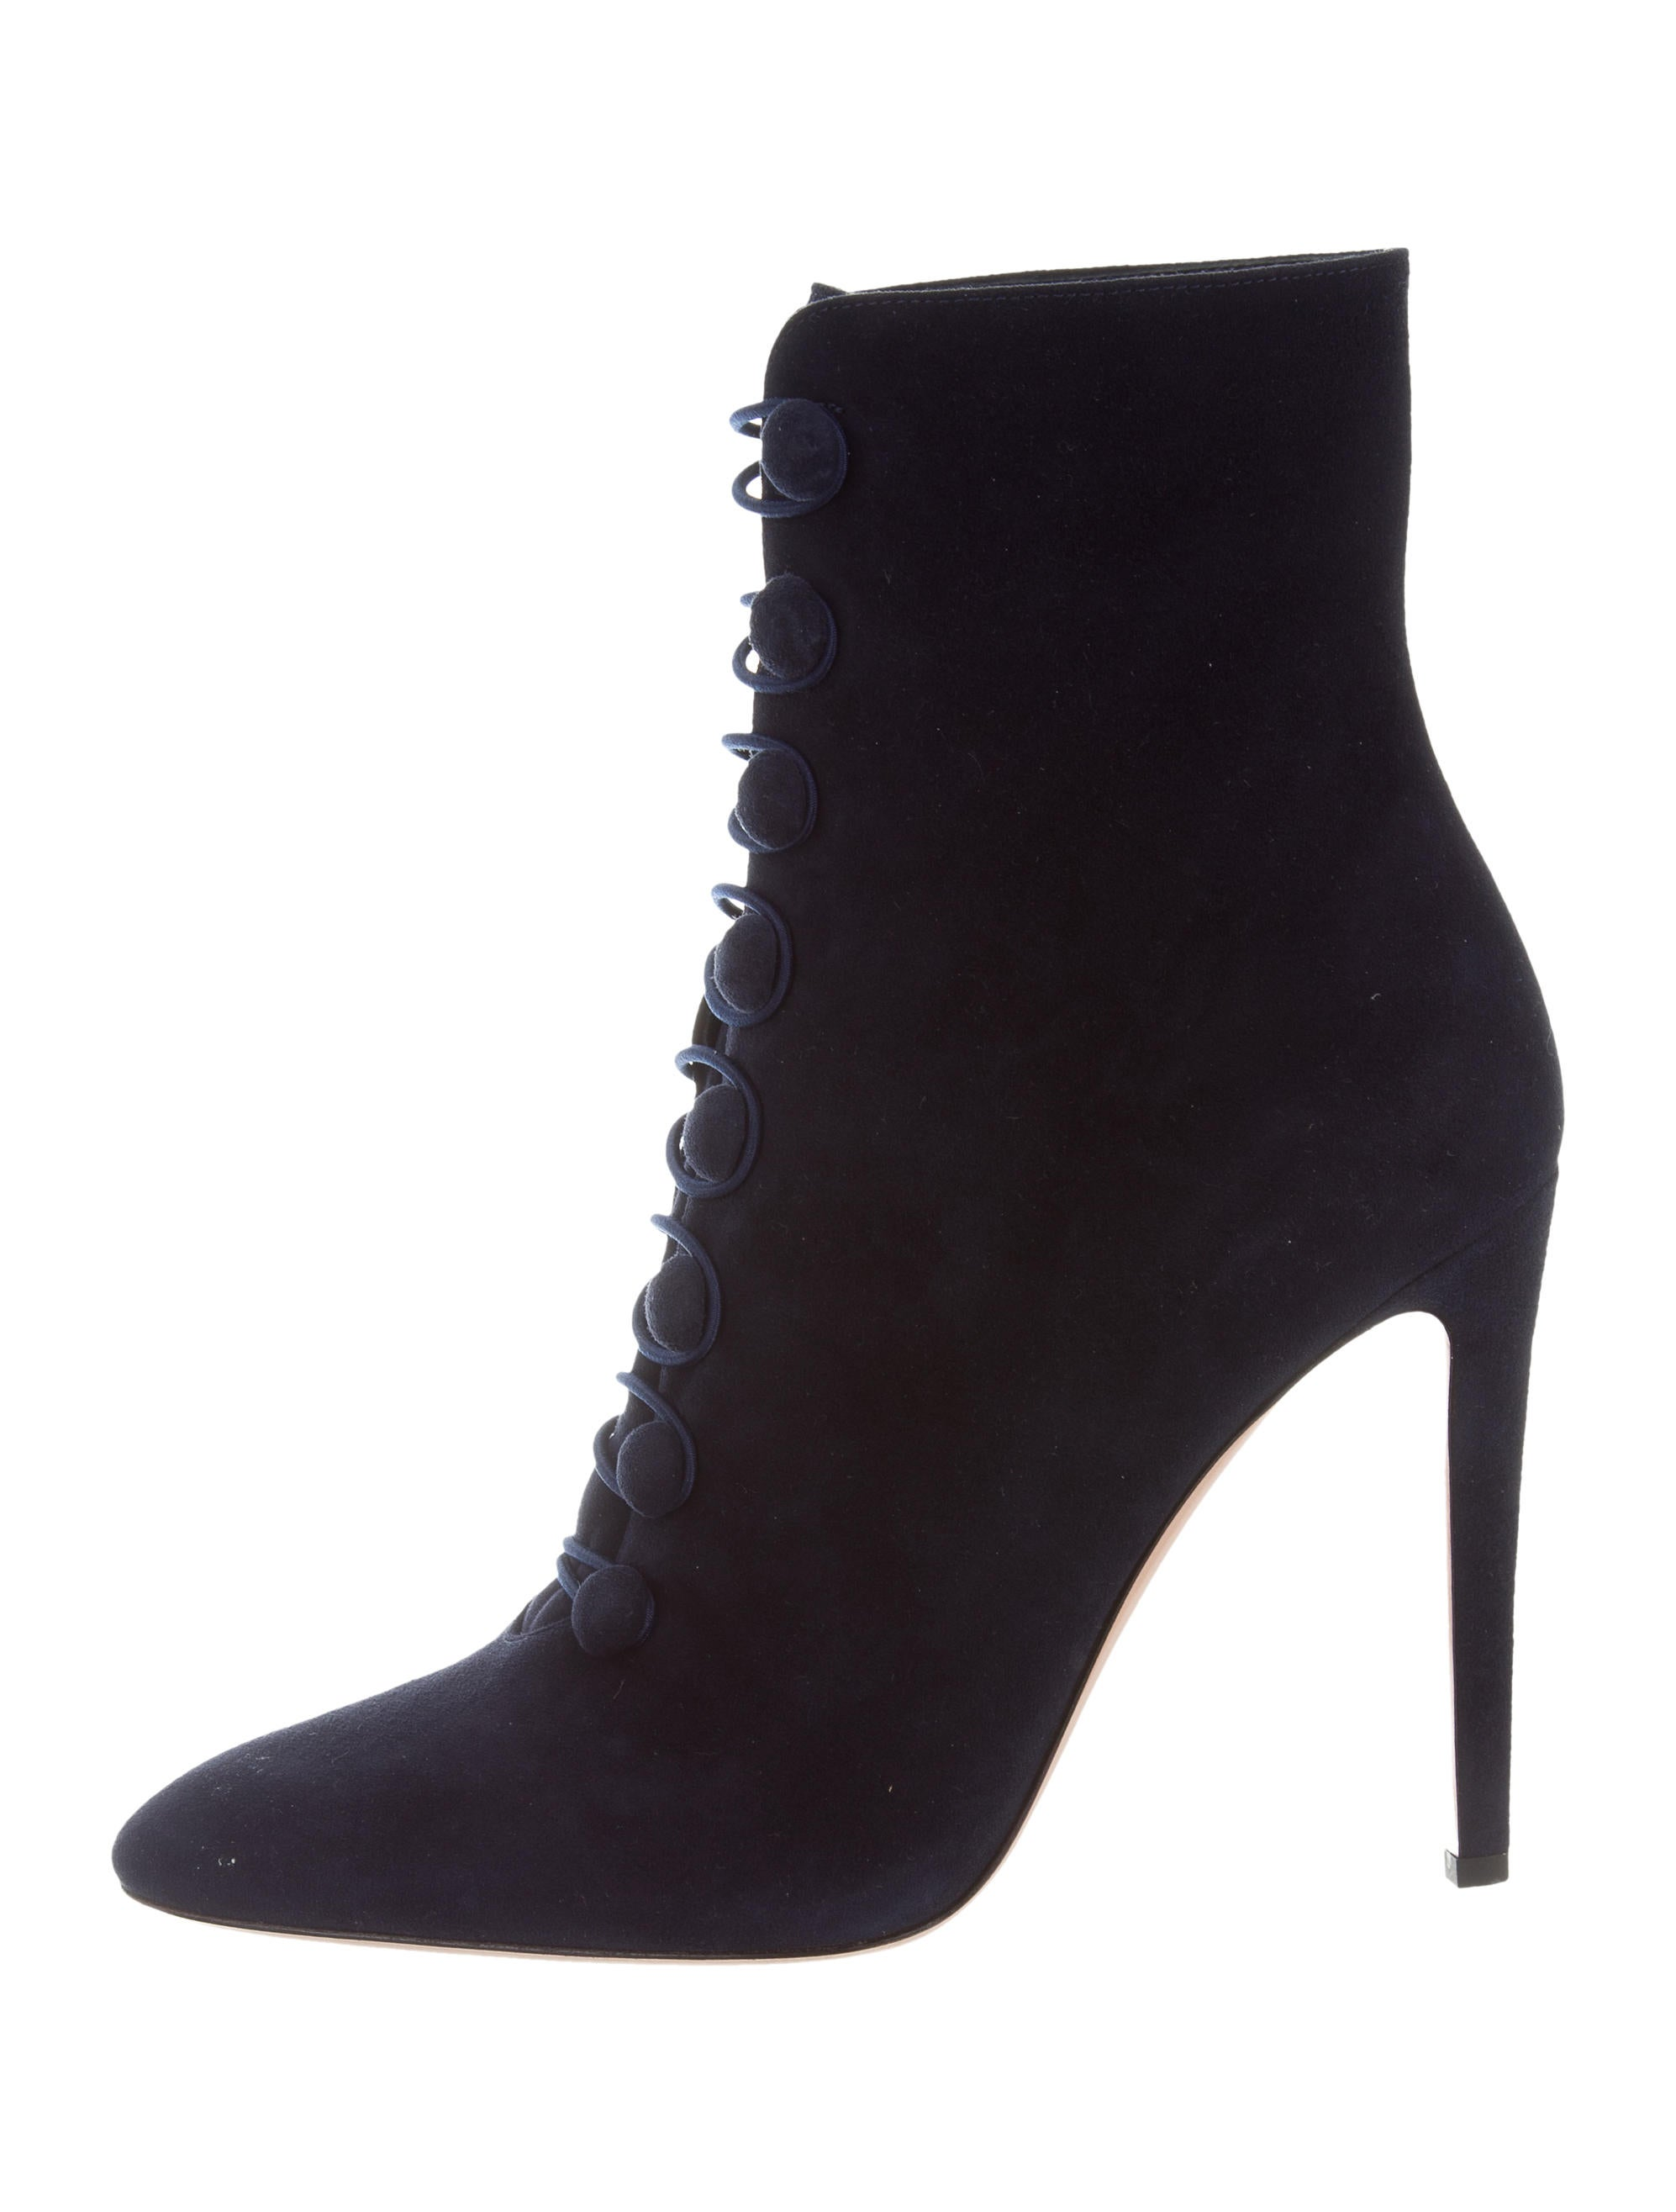 Gianvito Rossi Pointed-Toe Ankle Boots w/ Tags many kinds of discount pick a best clearance prices clearance geniue stockist discount low price fee shipping rXDrCm7hx